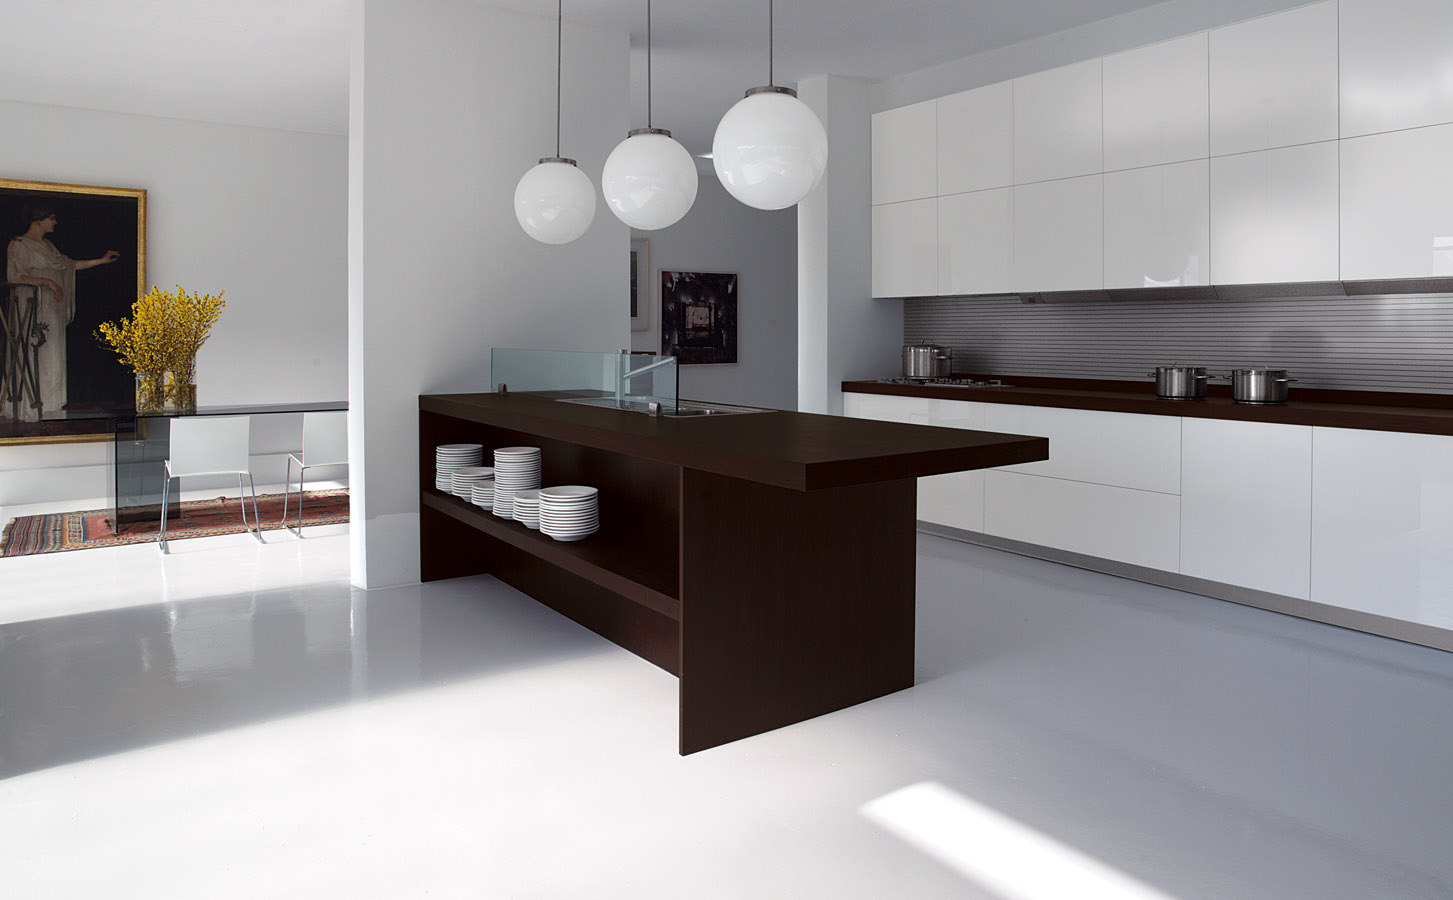 Simple contemporary kitchen interior design one - Interior design kitchen ...